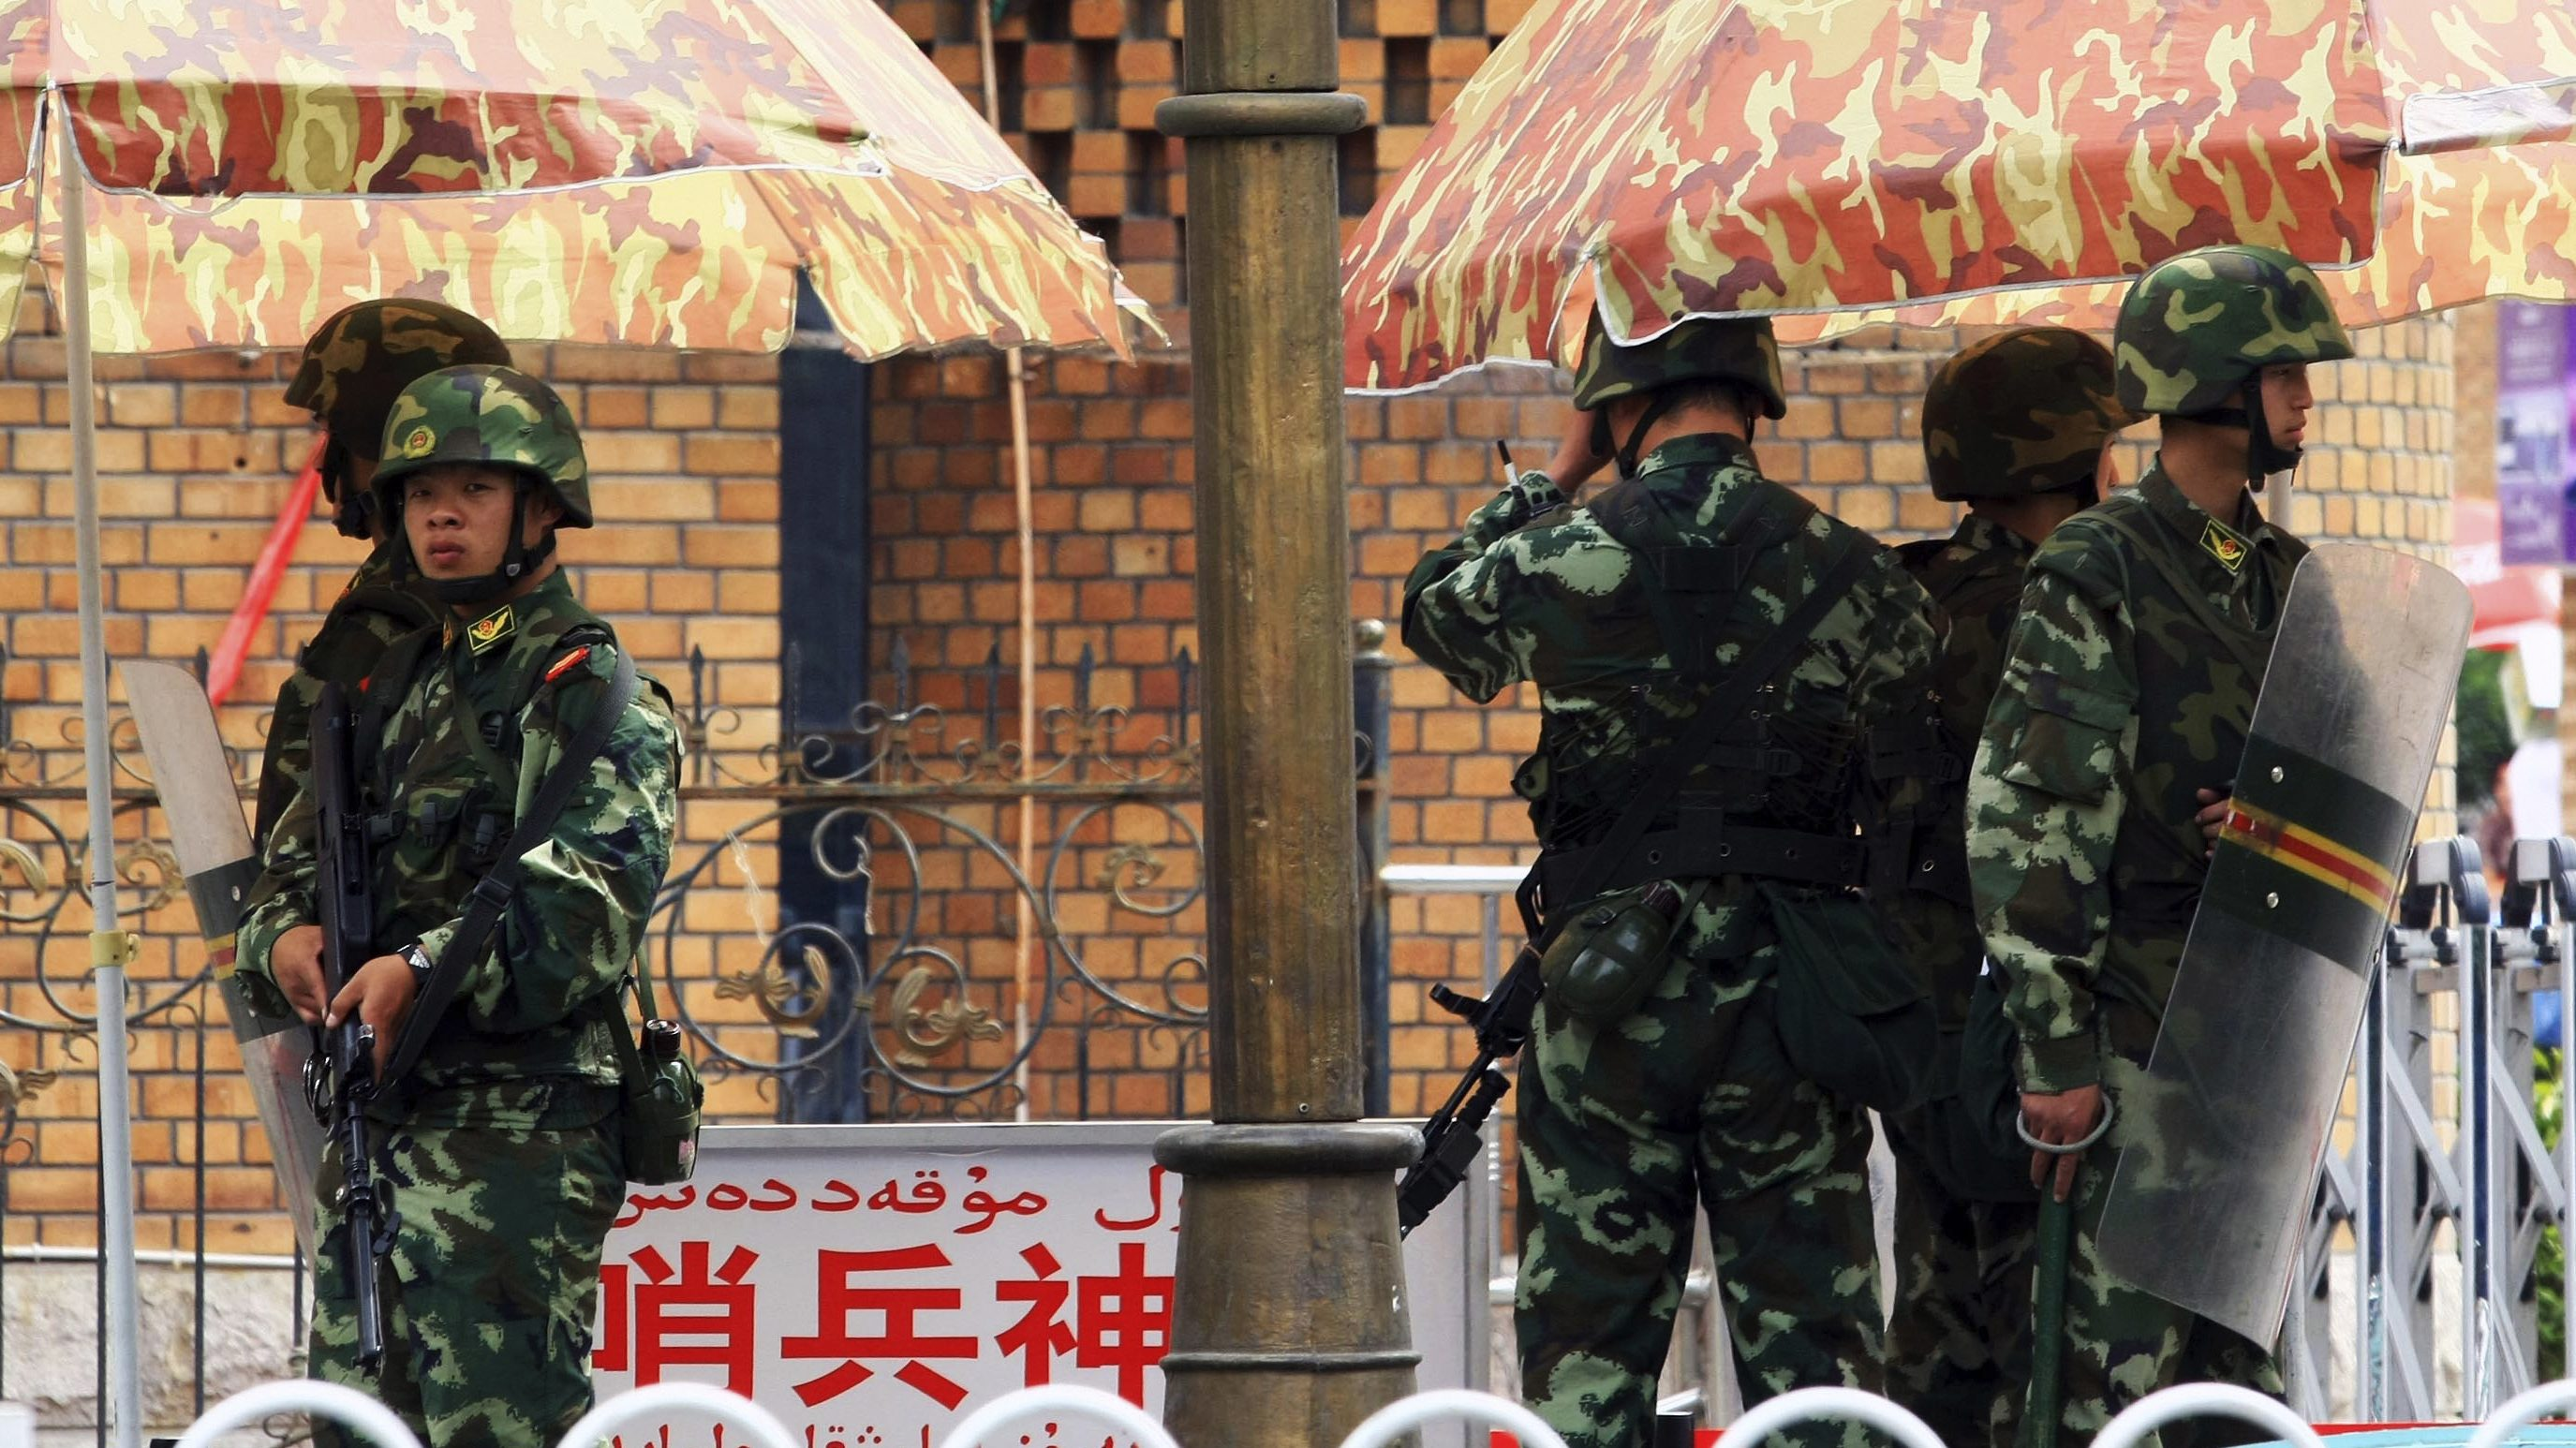 Armed paramilitary policemen stand on duty in downtown Urumqi, Xinjiang Uighur autonomous region, August 24, 2009. China is likely to begin trials this week over deadly riots in the restive far-west region of Xinjiang last month, with hundreds facing murder, arson and other charges, the official China Daily said. Picture taken August 24, 2009. REUTERS/China Daily (CHINA POLITICS CRIME LAW SOCIETY) CHINA OUT. NO COMMERCIAL OR EDITORIAL SALES IN CHINA - RTR2730D